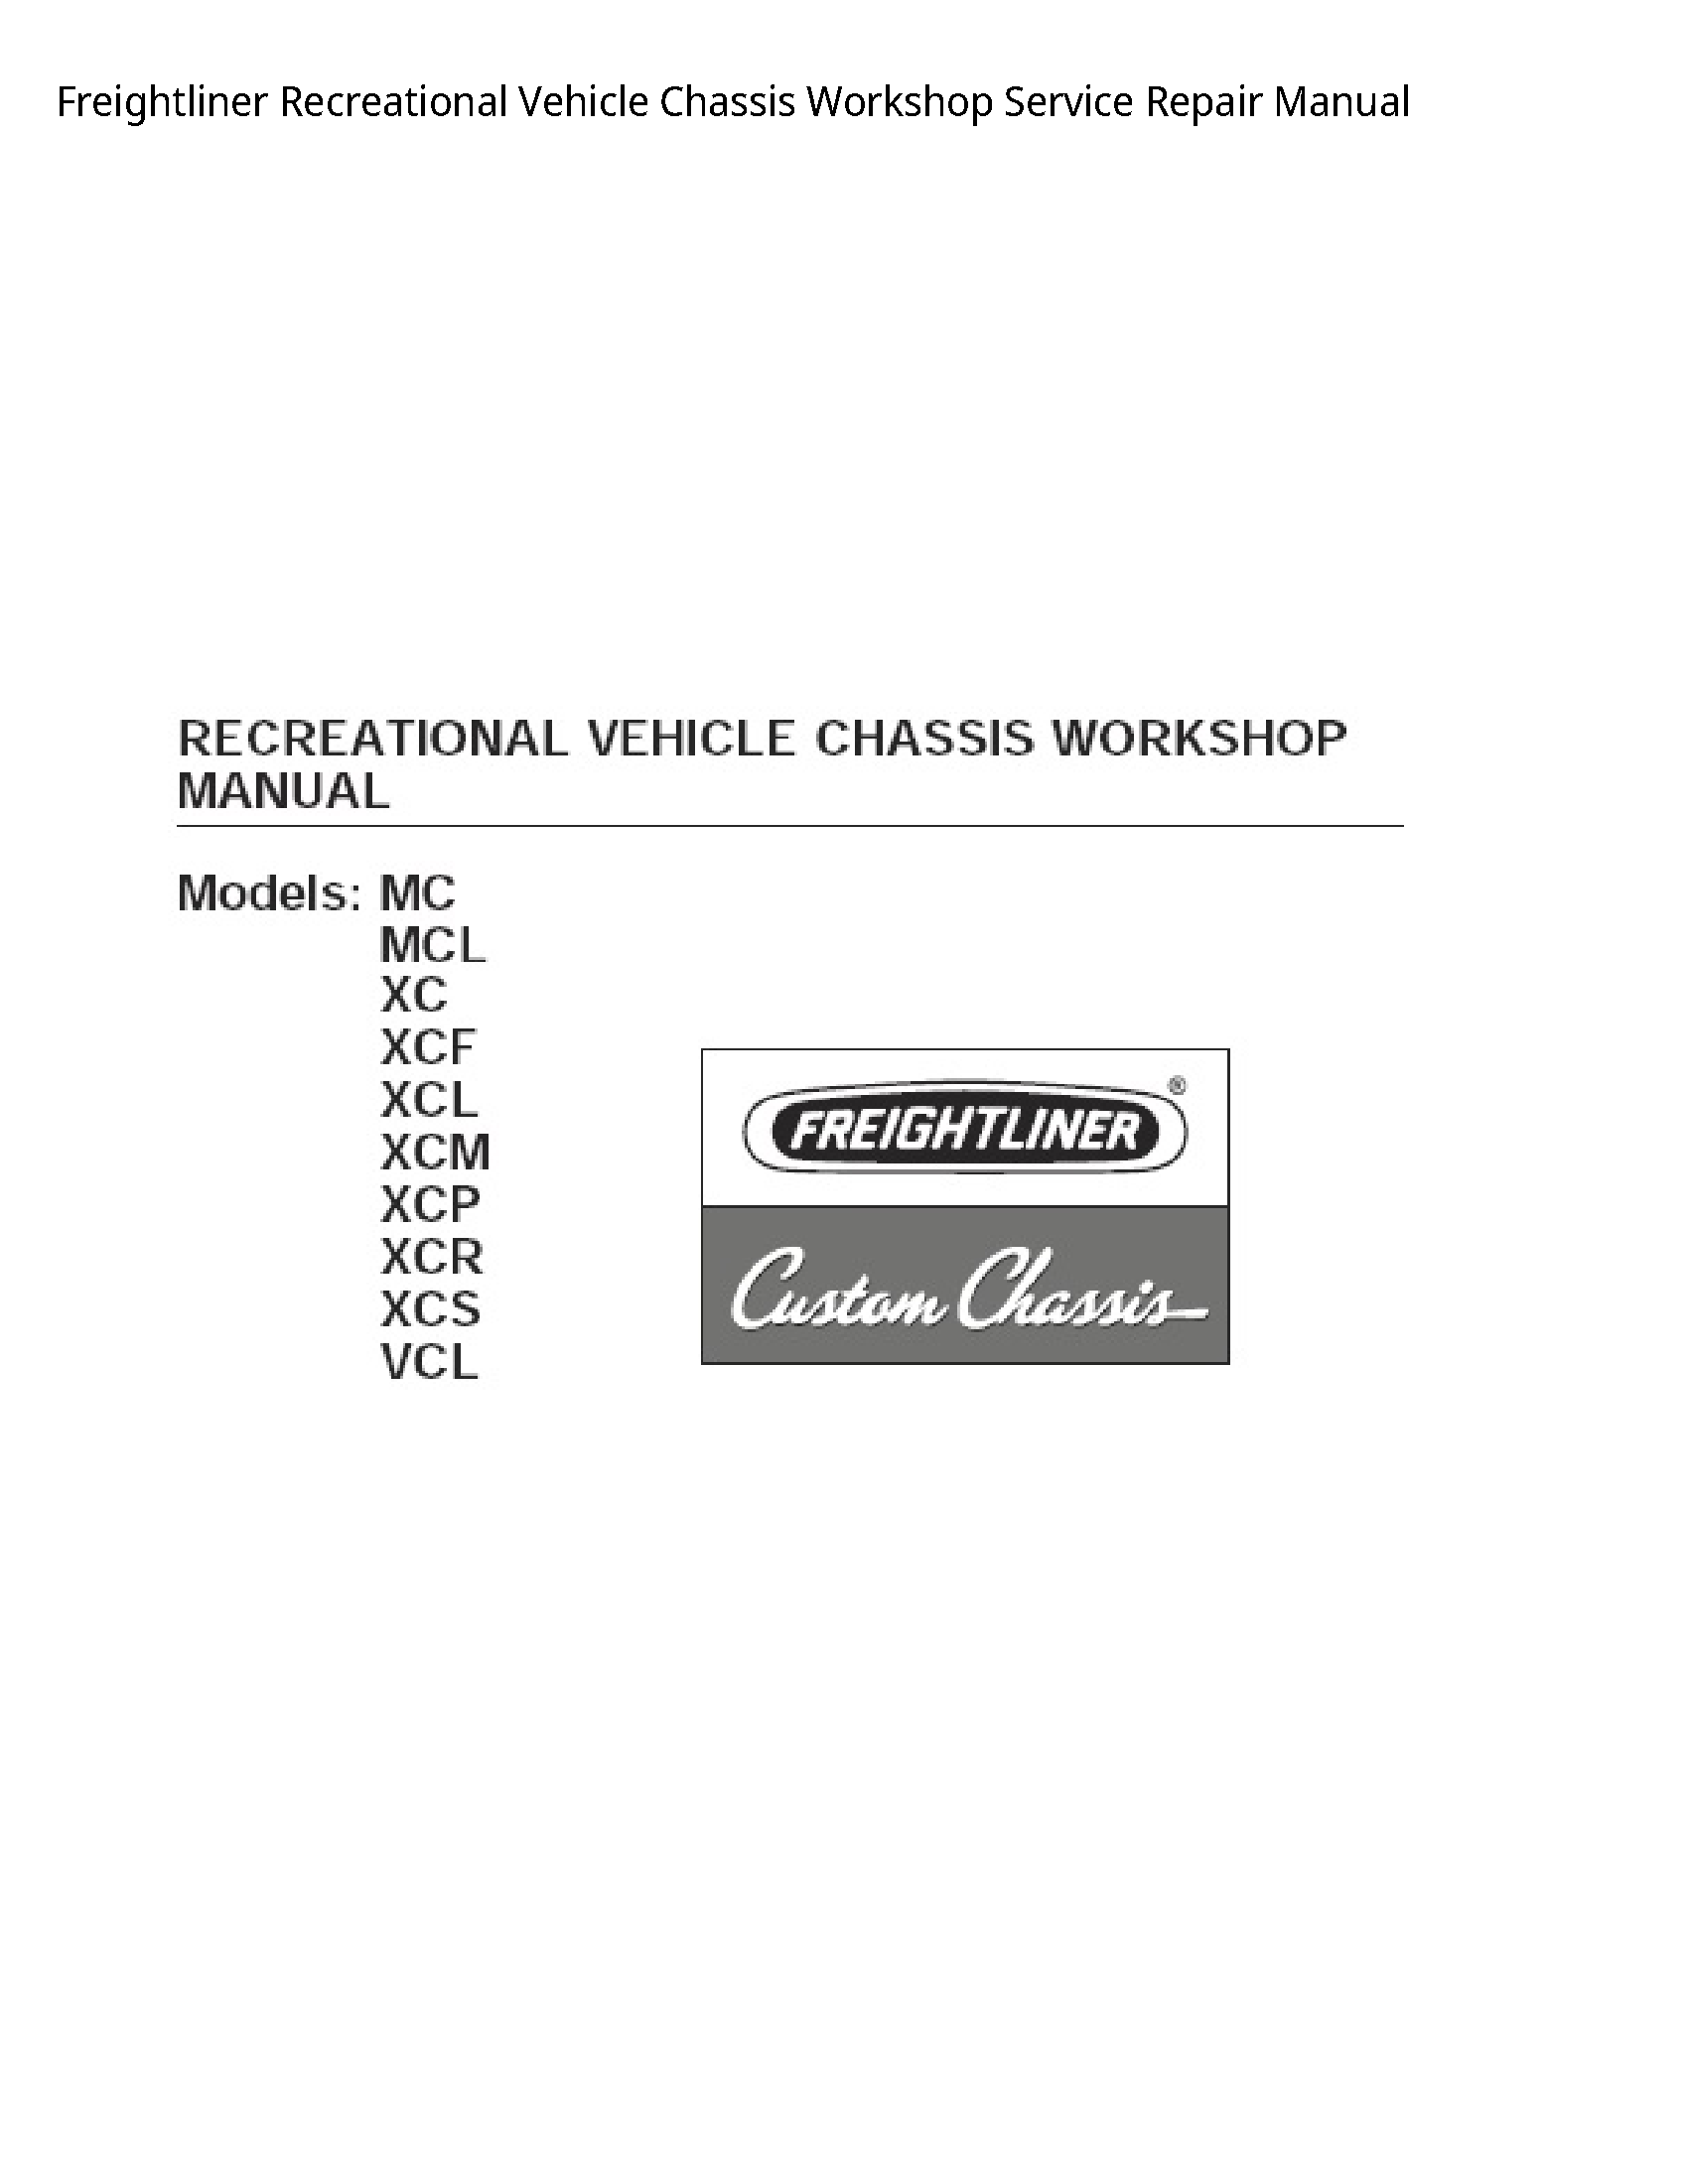 Freightliner Recreational Vehicle Chassis manual